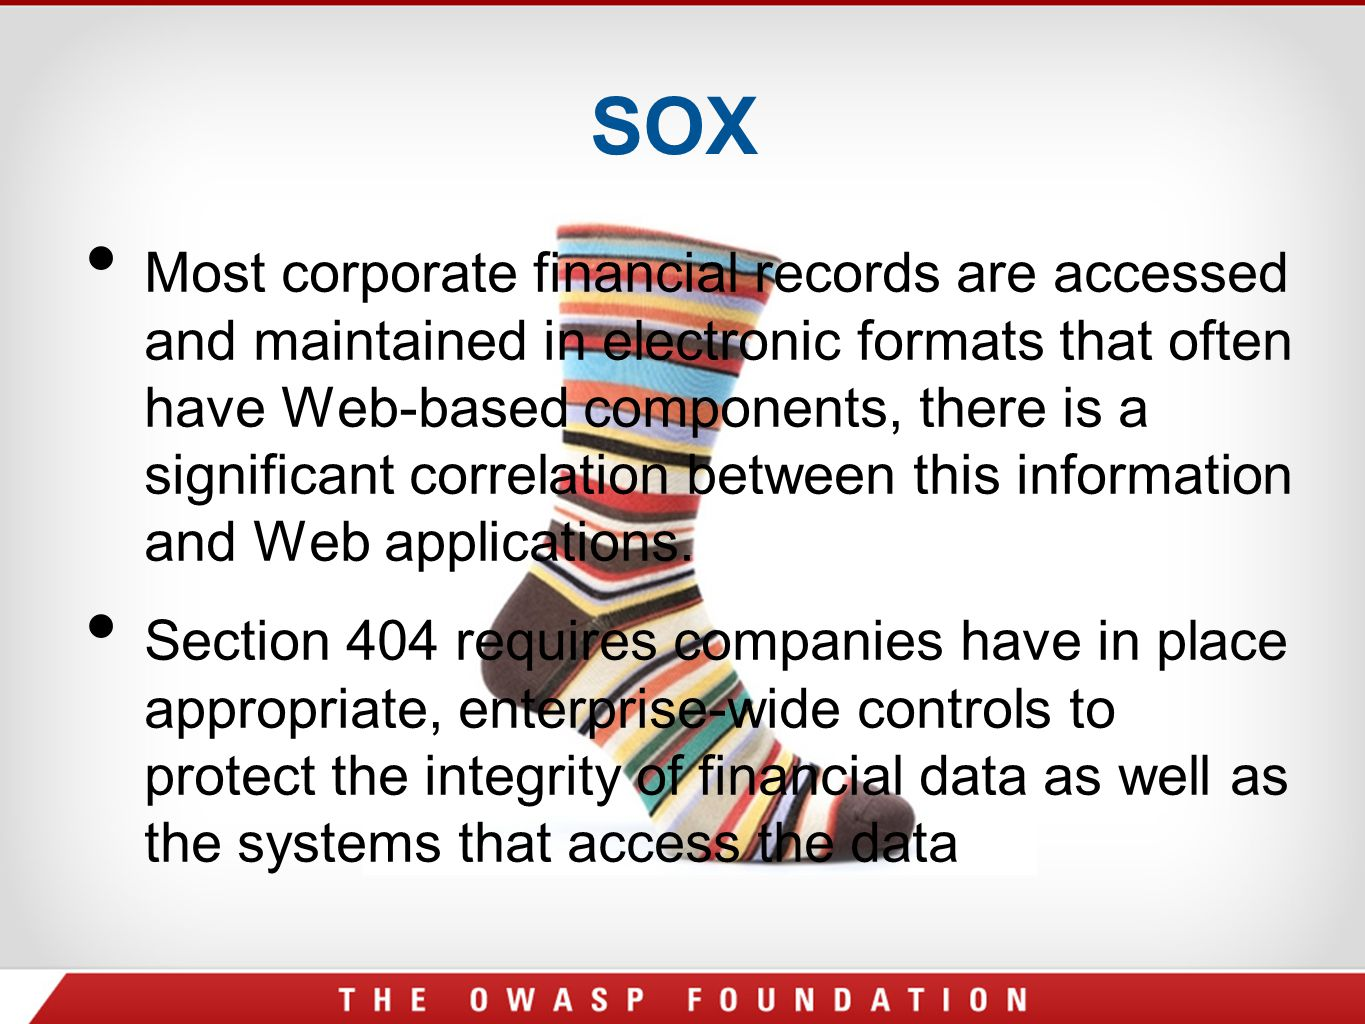 SOX Most corporate financial records are accessed and maintained in electronic formats that often have Web-based components, there is a significant co